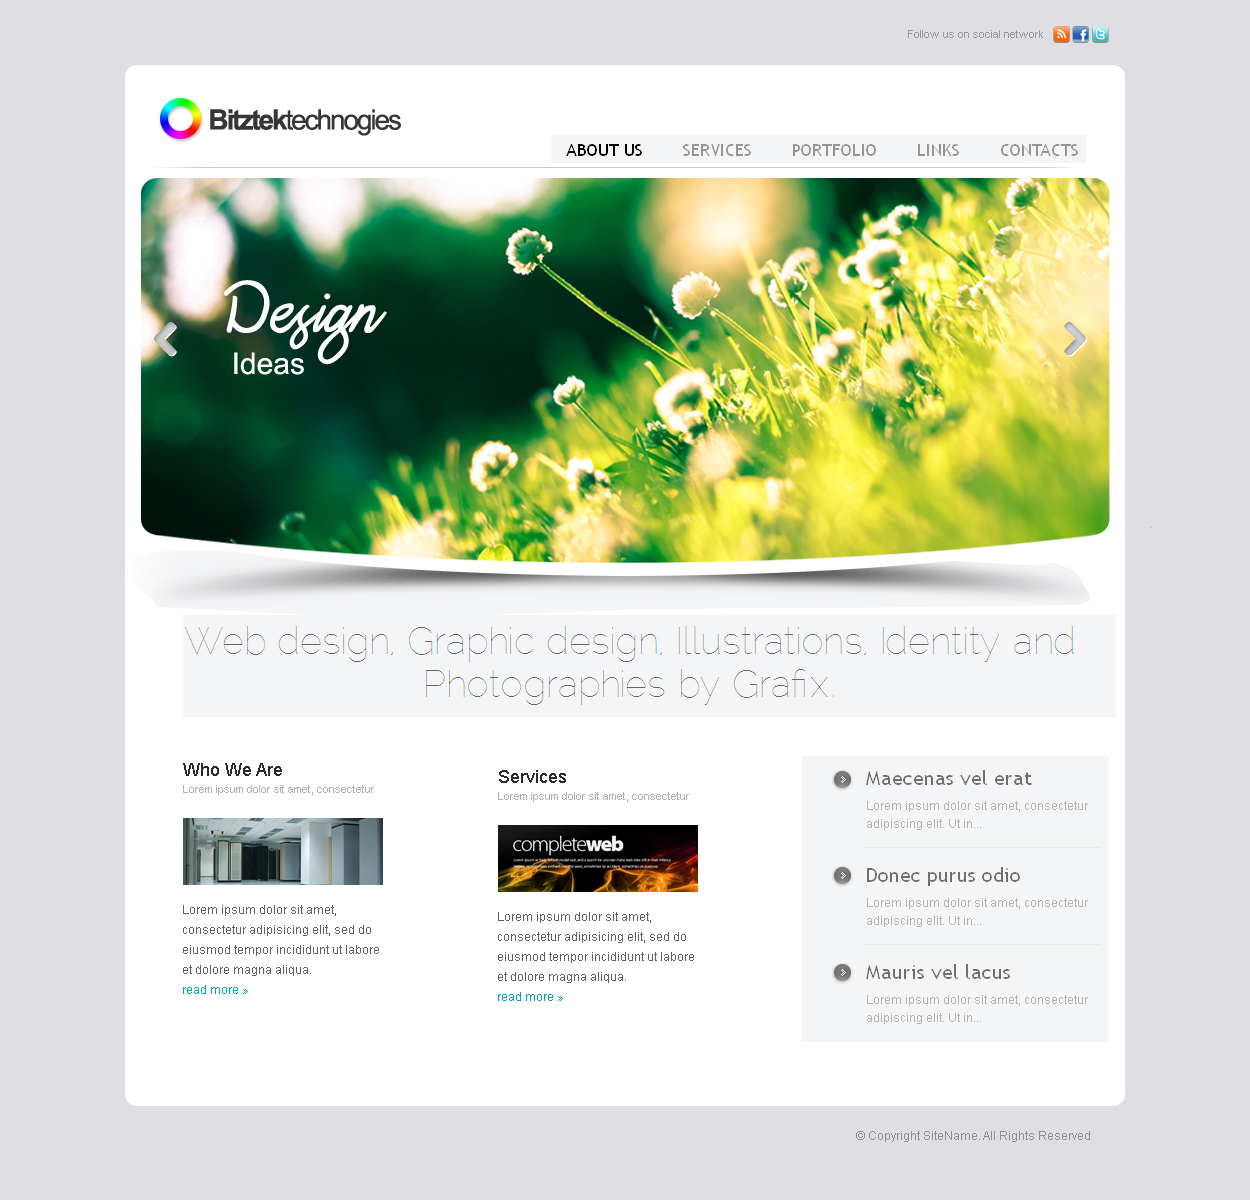 webdesign for software development and web designing company(Bitztek